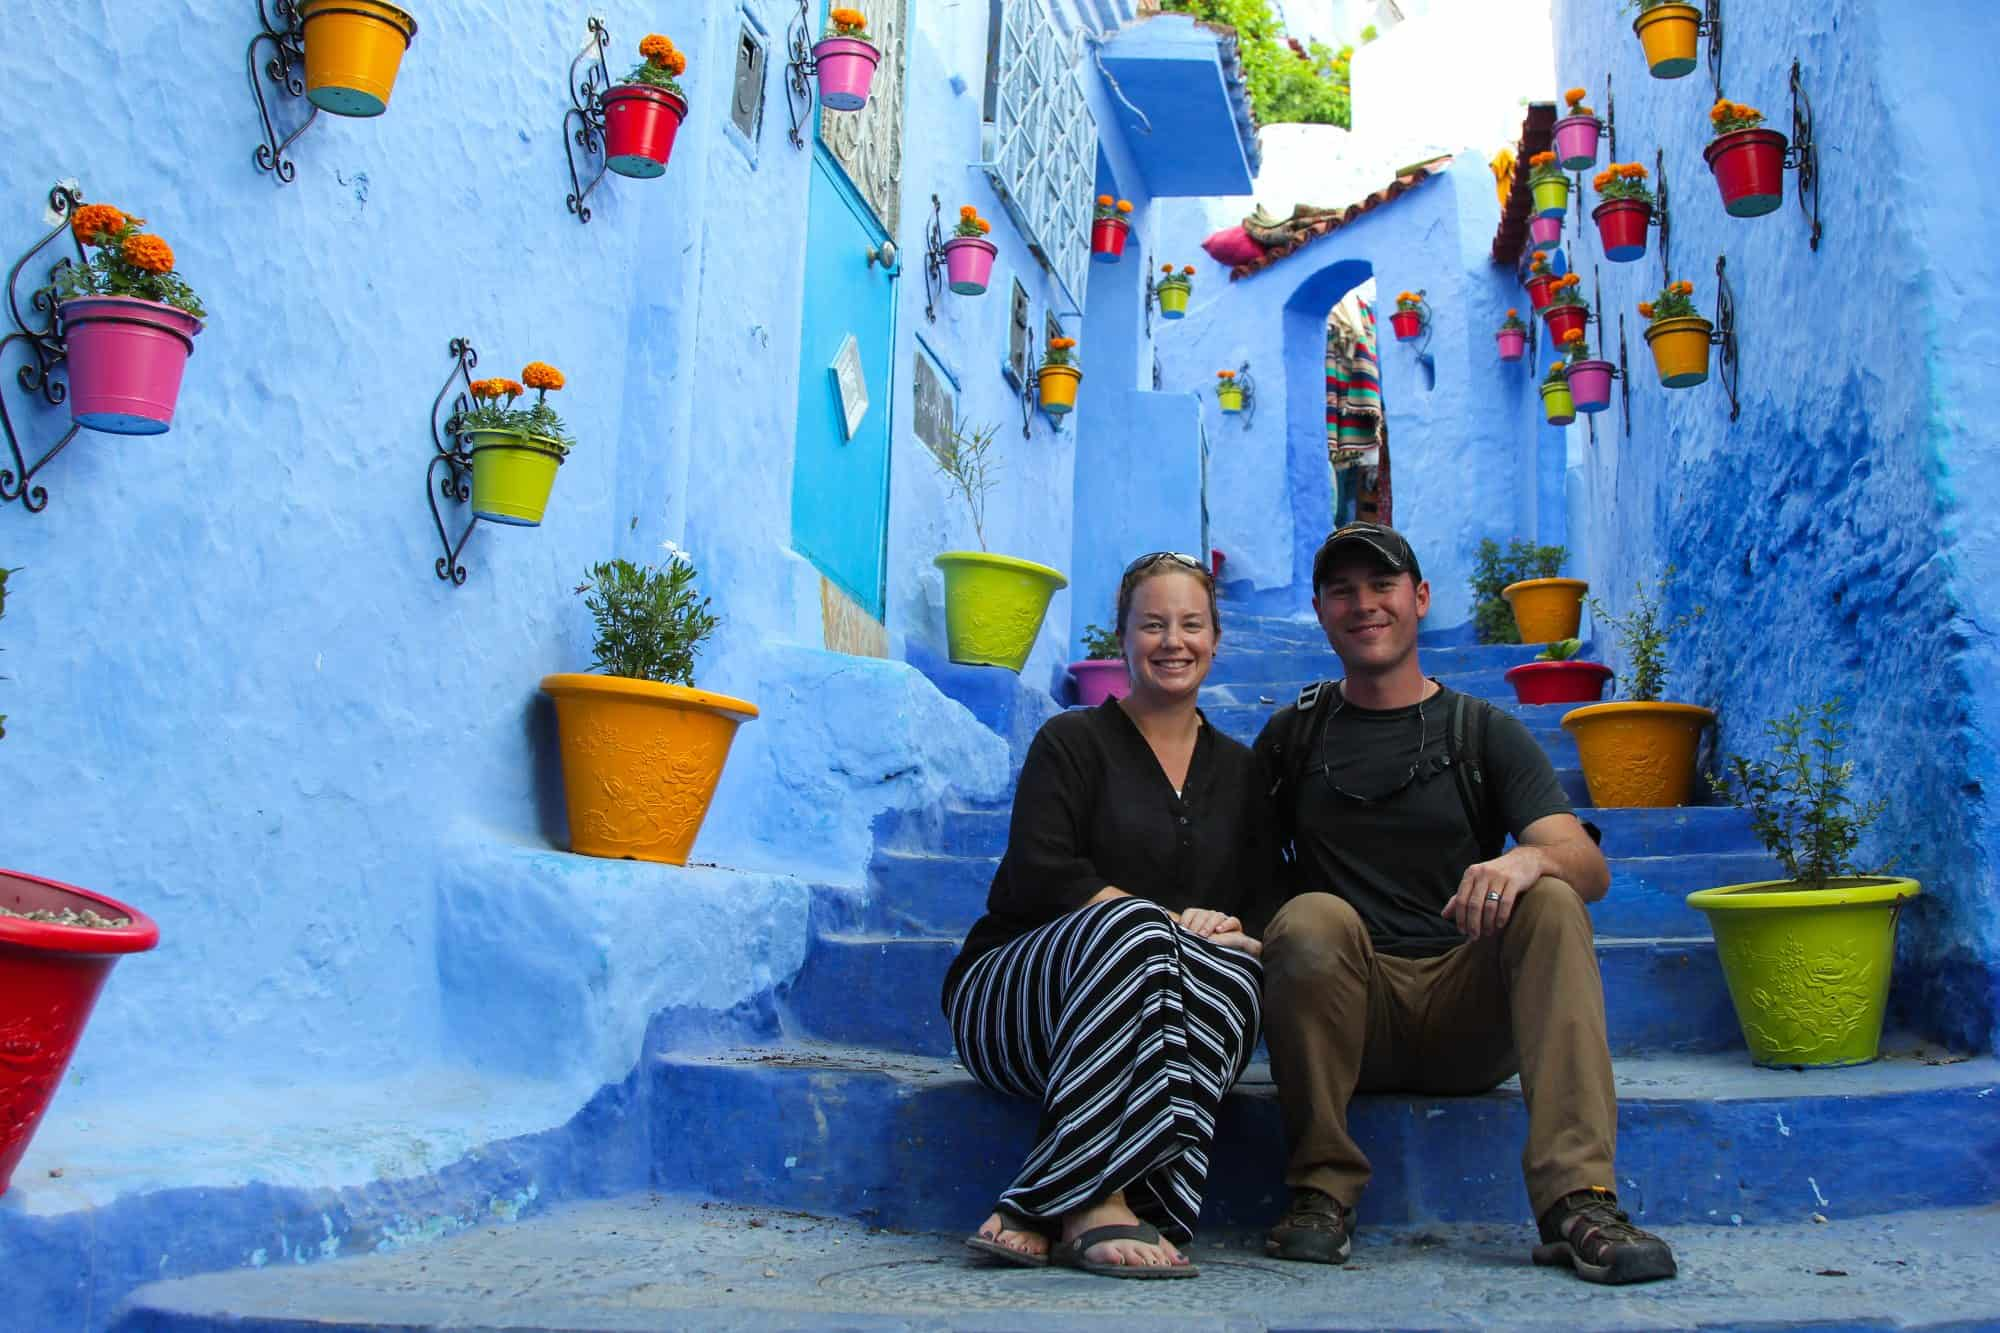 Divergent Travelers Chefchaouen Morocco Blue City